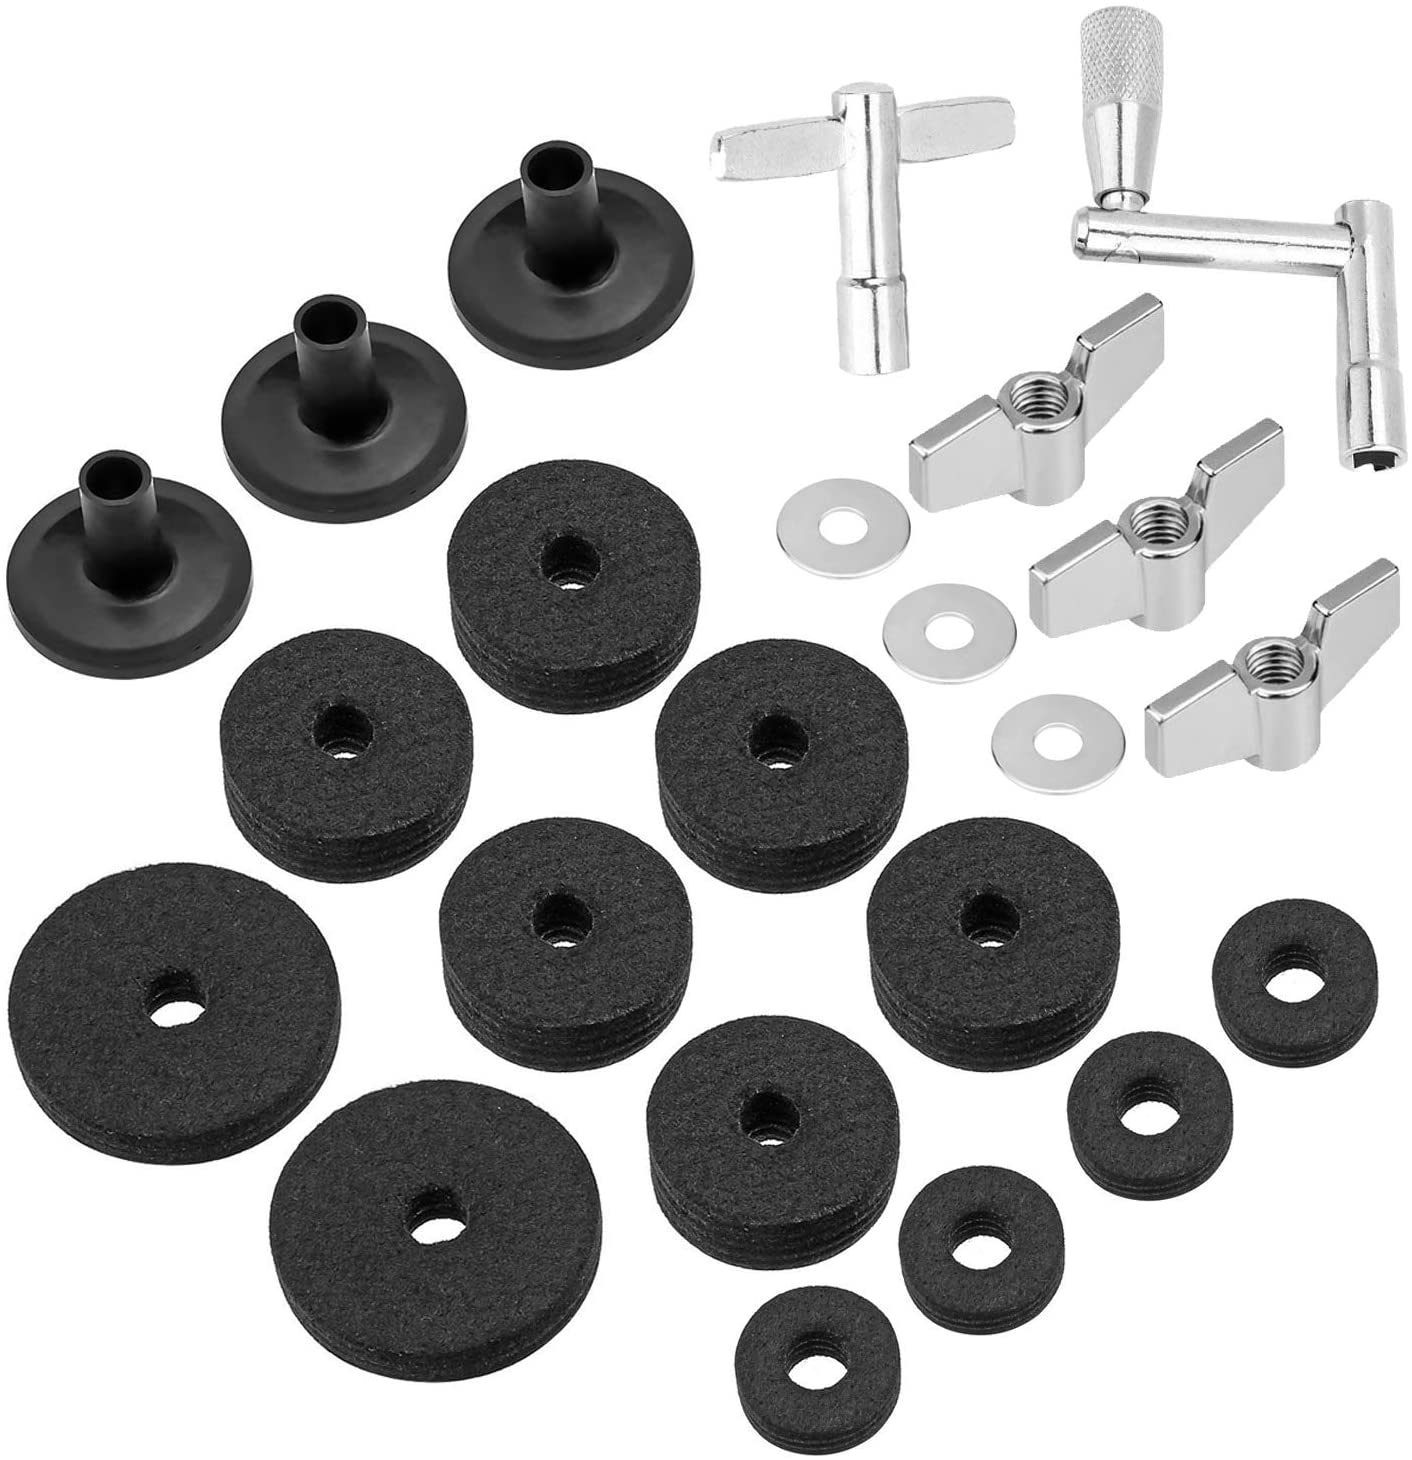 23 Pieces Cymbal Replacement Accessories Cymbal Felts Hi-Hat Clutch Felt Hi Hat Cup Felt Cymbal Sleeves with Base Wing Nuts Cymbal Washer and Drum Keys for Drum Set (Black)